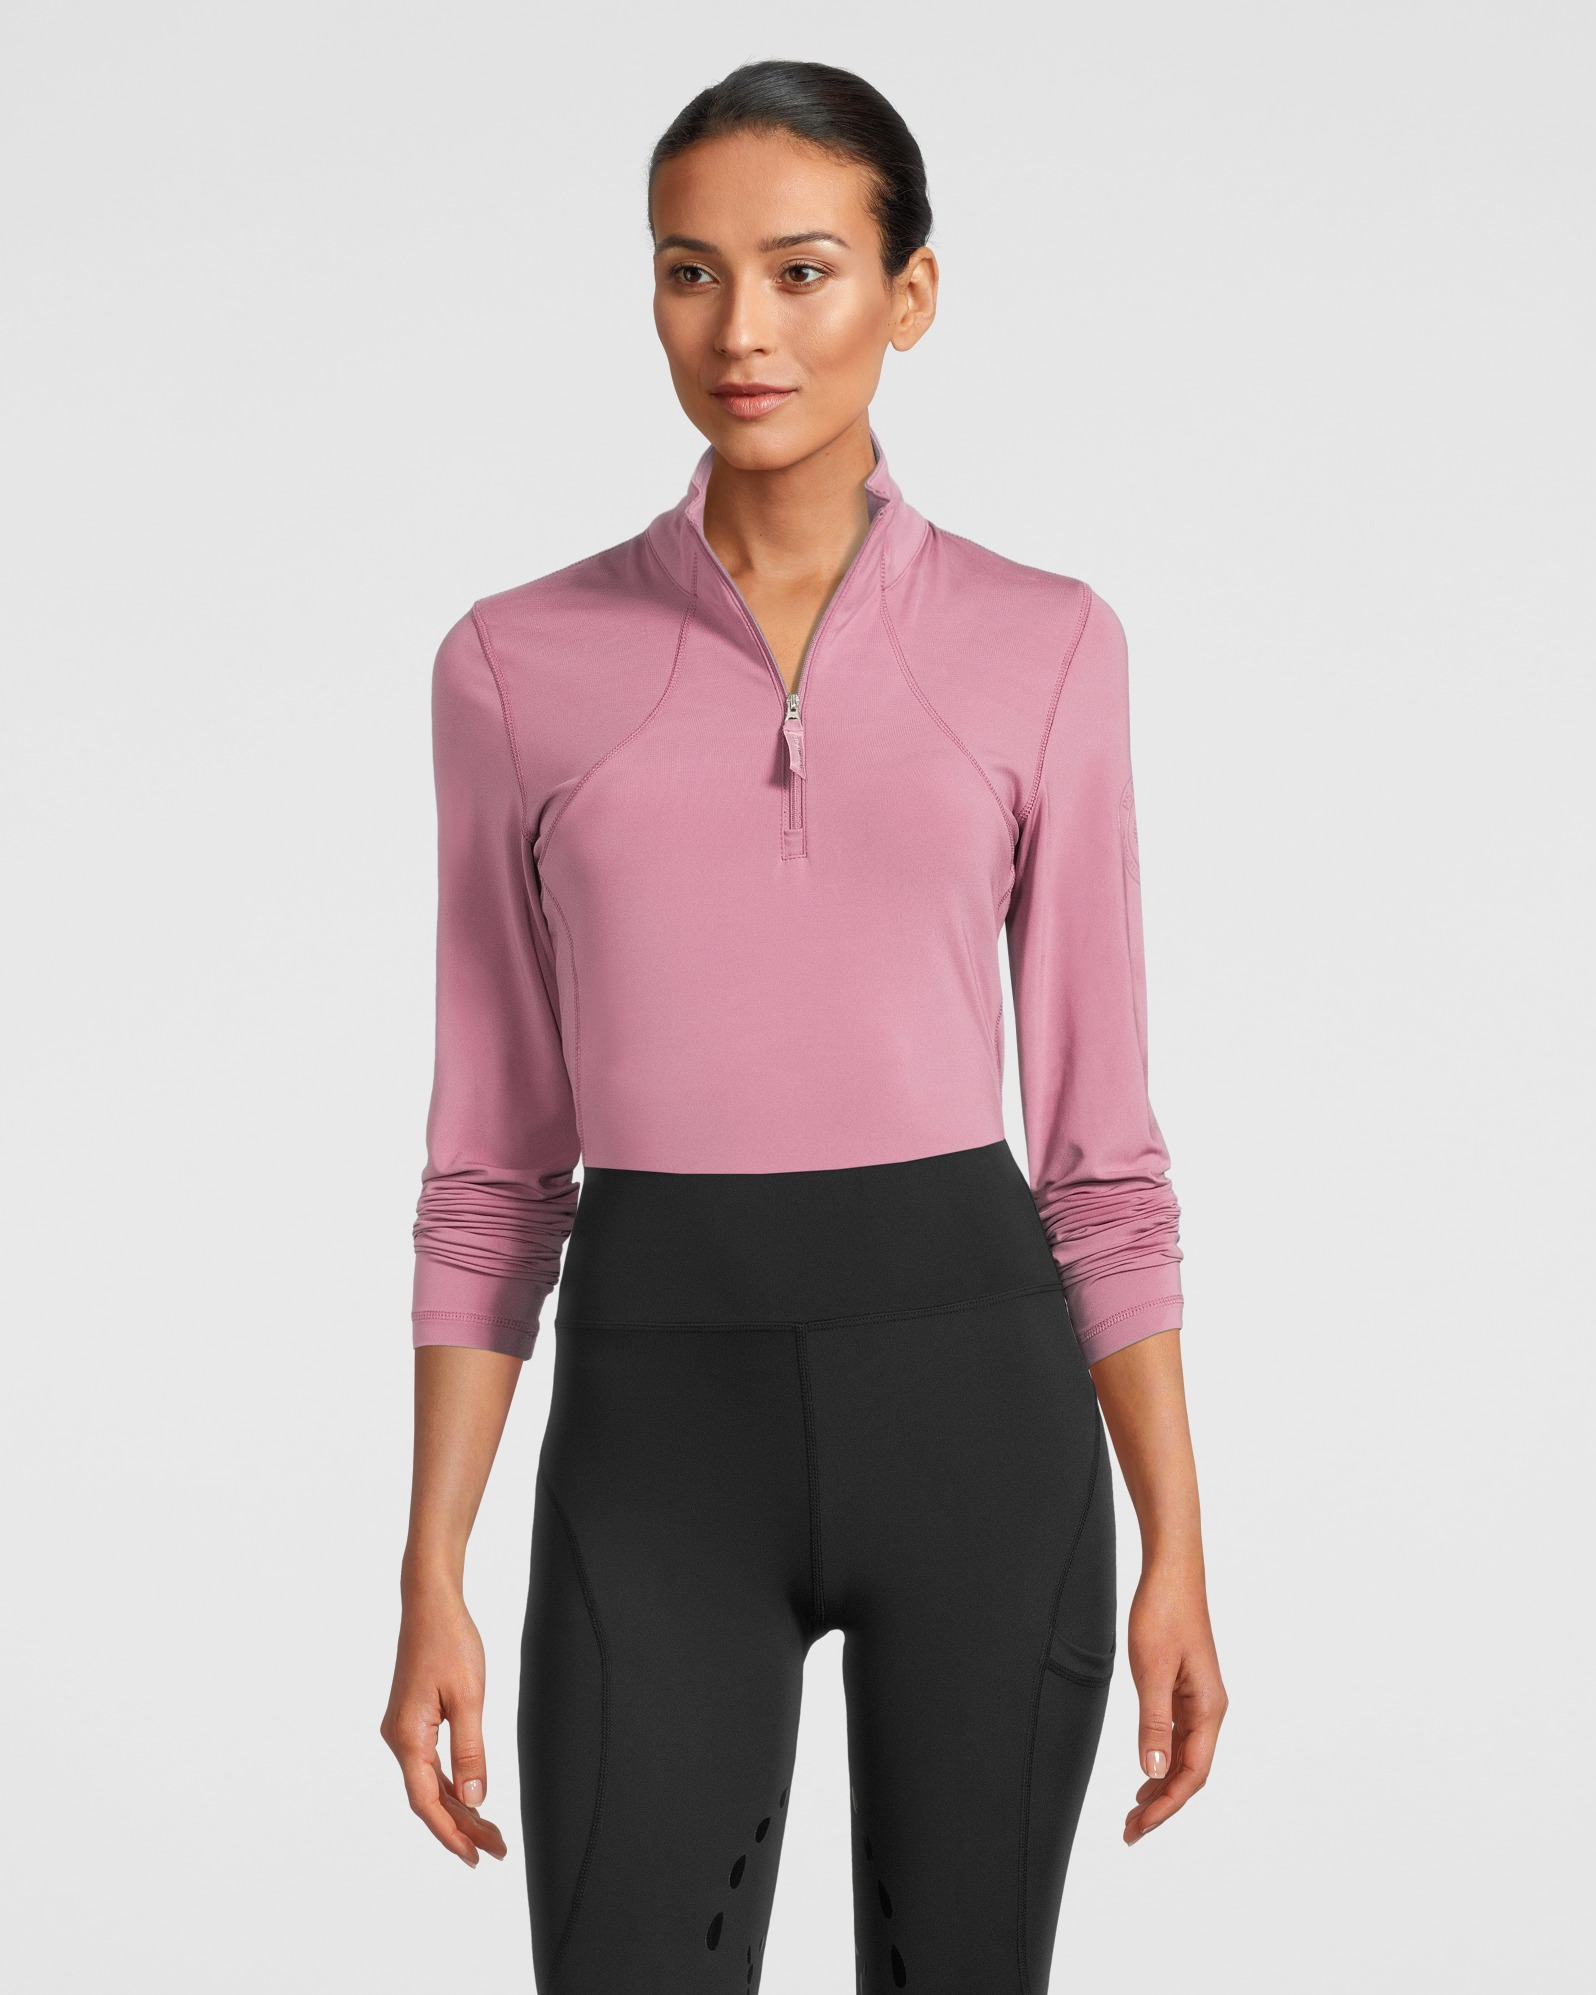 PS of Sweden Alessandra Base Layer in Roseberry